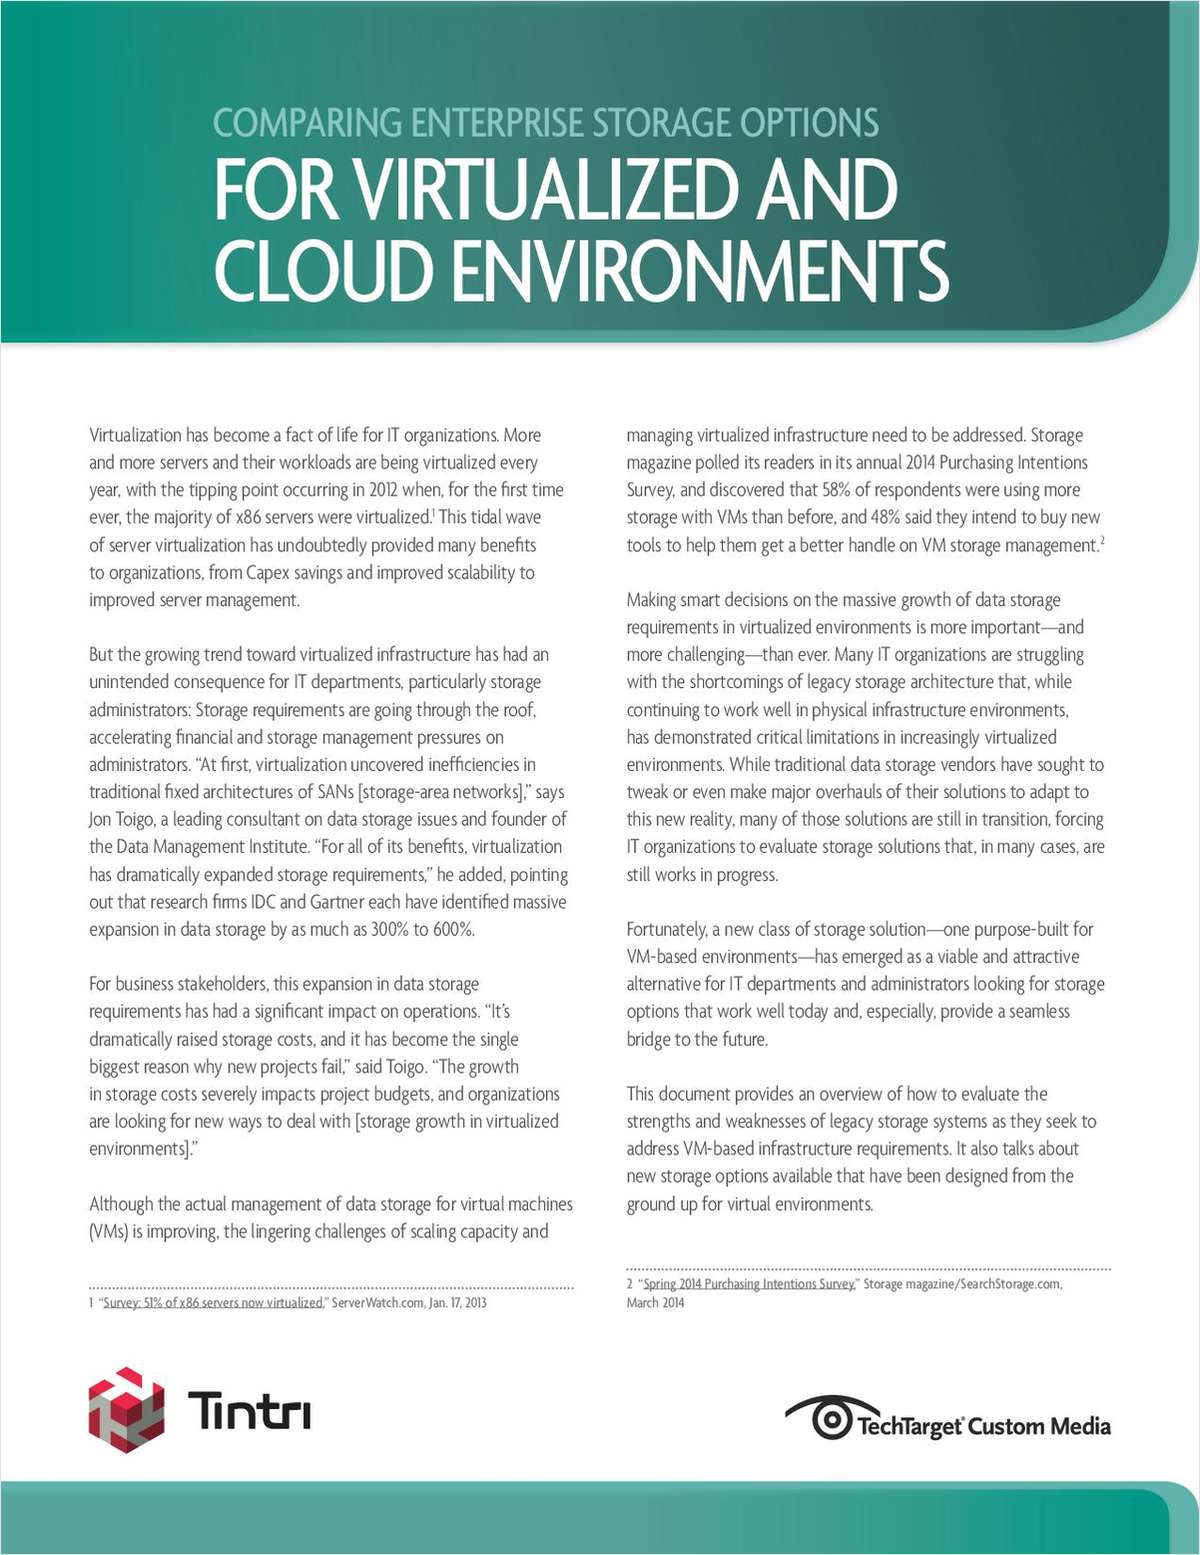 Comparing Enterprise Storage Options For Virtualized and Cloud Environments